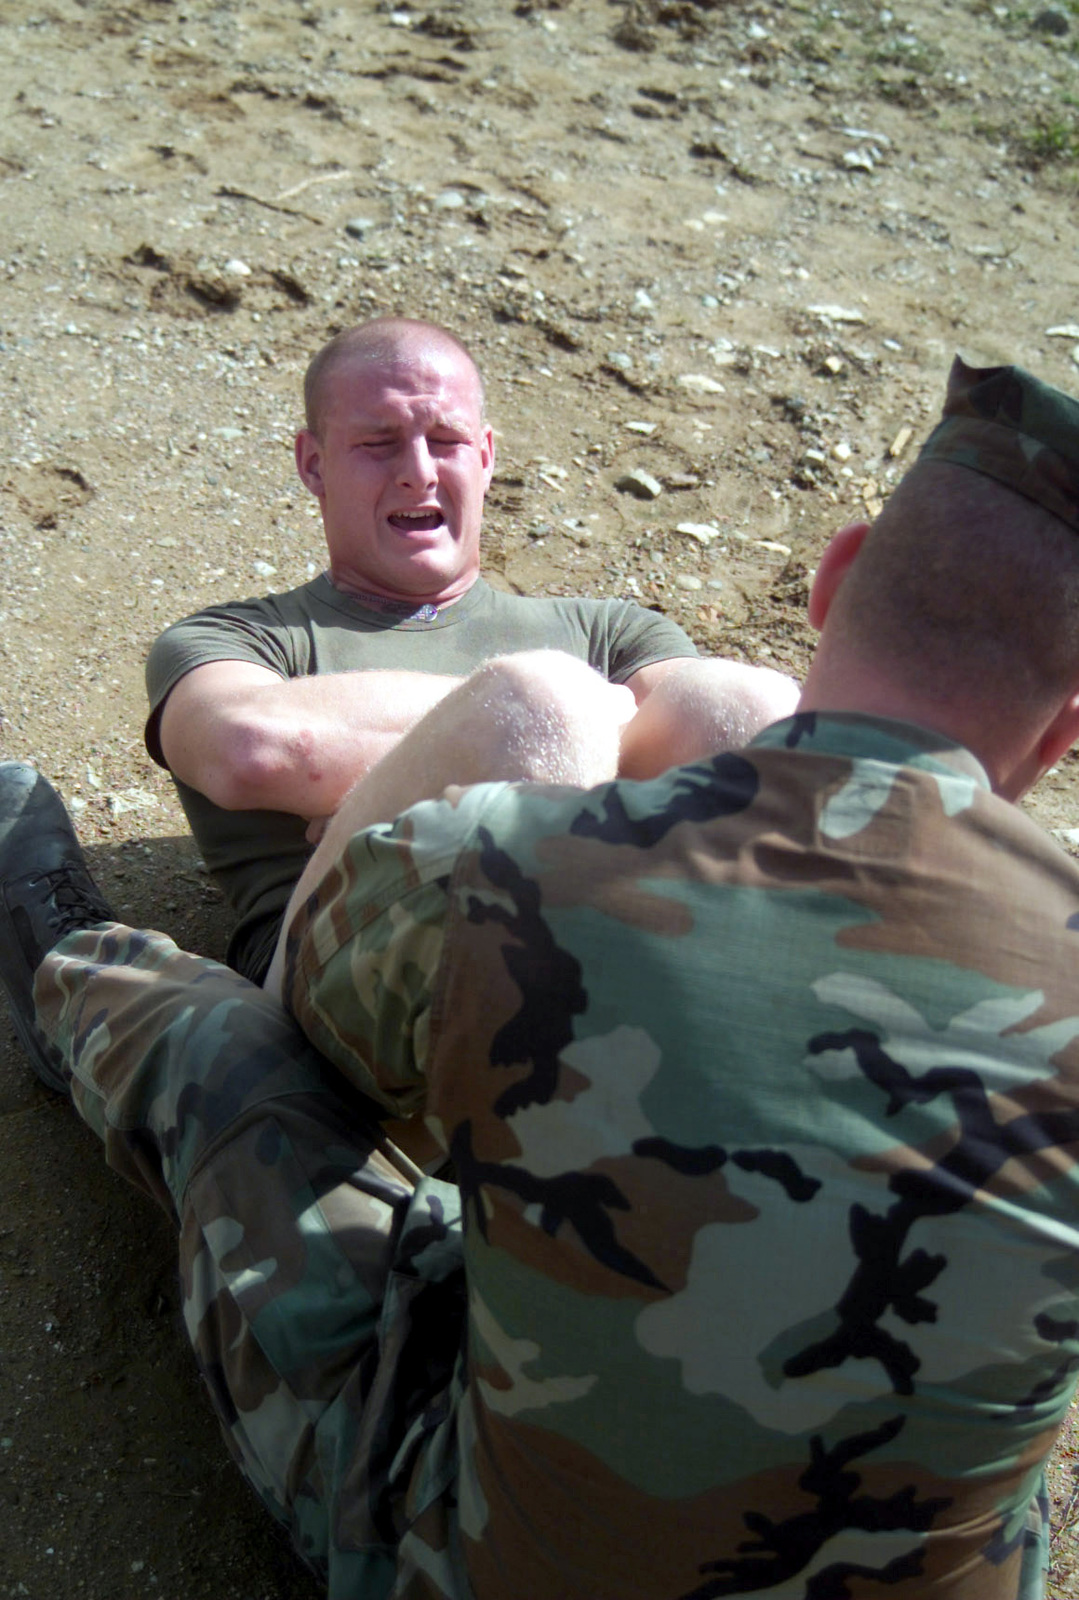 US Marine Corps (USMC) Sergeant (SGT) Alex Vanbreukelen, S-4 Supply, 24th Marine Expeditionary Unit (MEU), strains to complete the sit up portion of a Physical Fitness Test, while SGT Neal E. Stillman, holds his feet, aboard Camp Casablanca, in Kosovo, during Operation DYNAMIC RESPONSE 2002